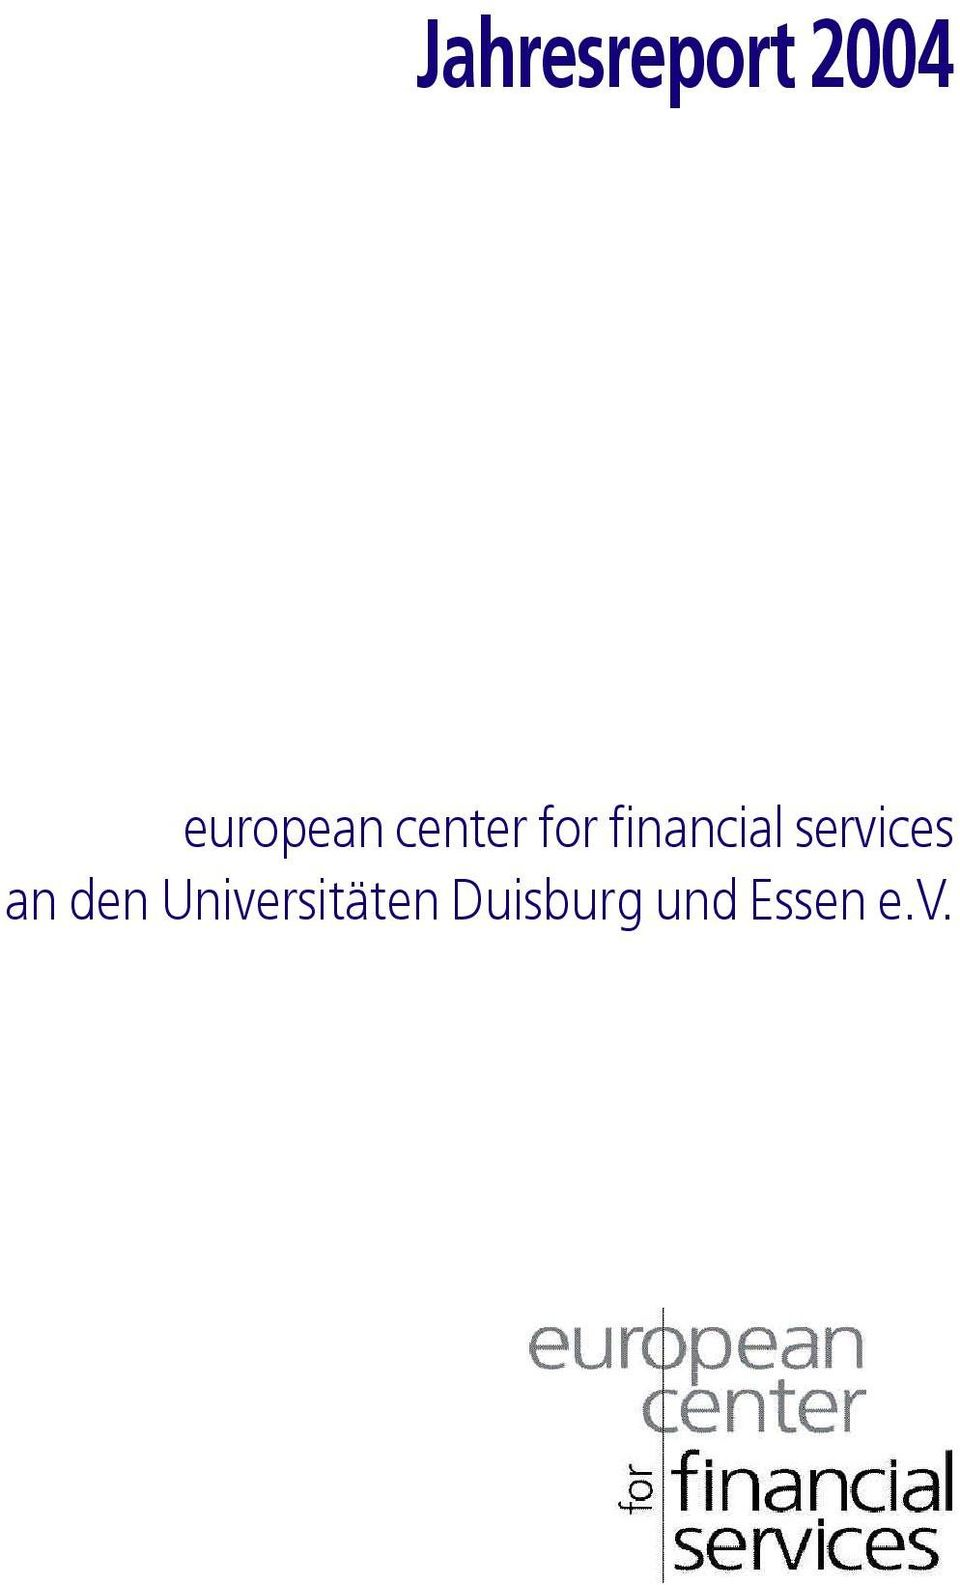 financial services an den